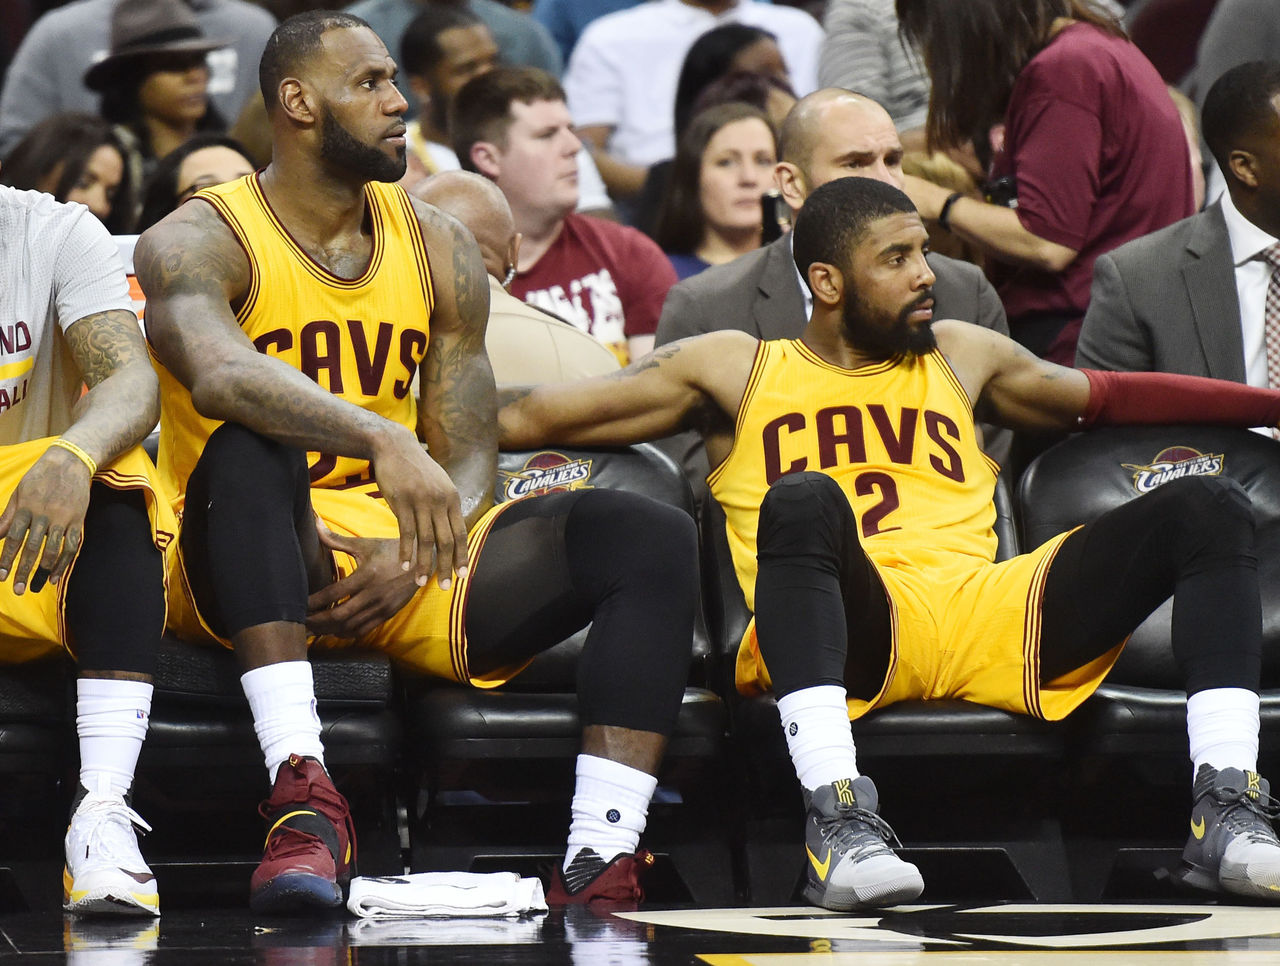 Cropped 2017 03 26t023525z 1855889301 nocid rtrmadp 3 nba washington wizards at cleveland cavaliers